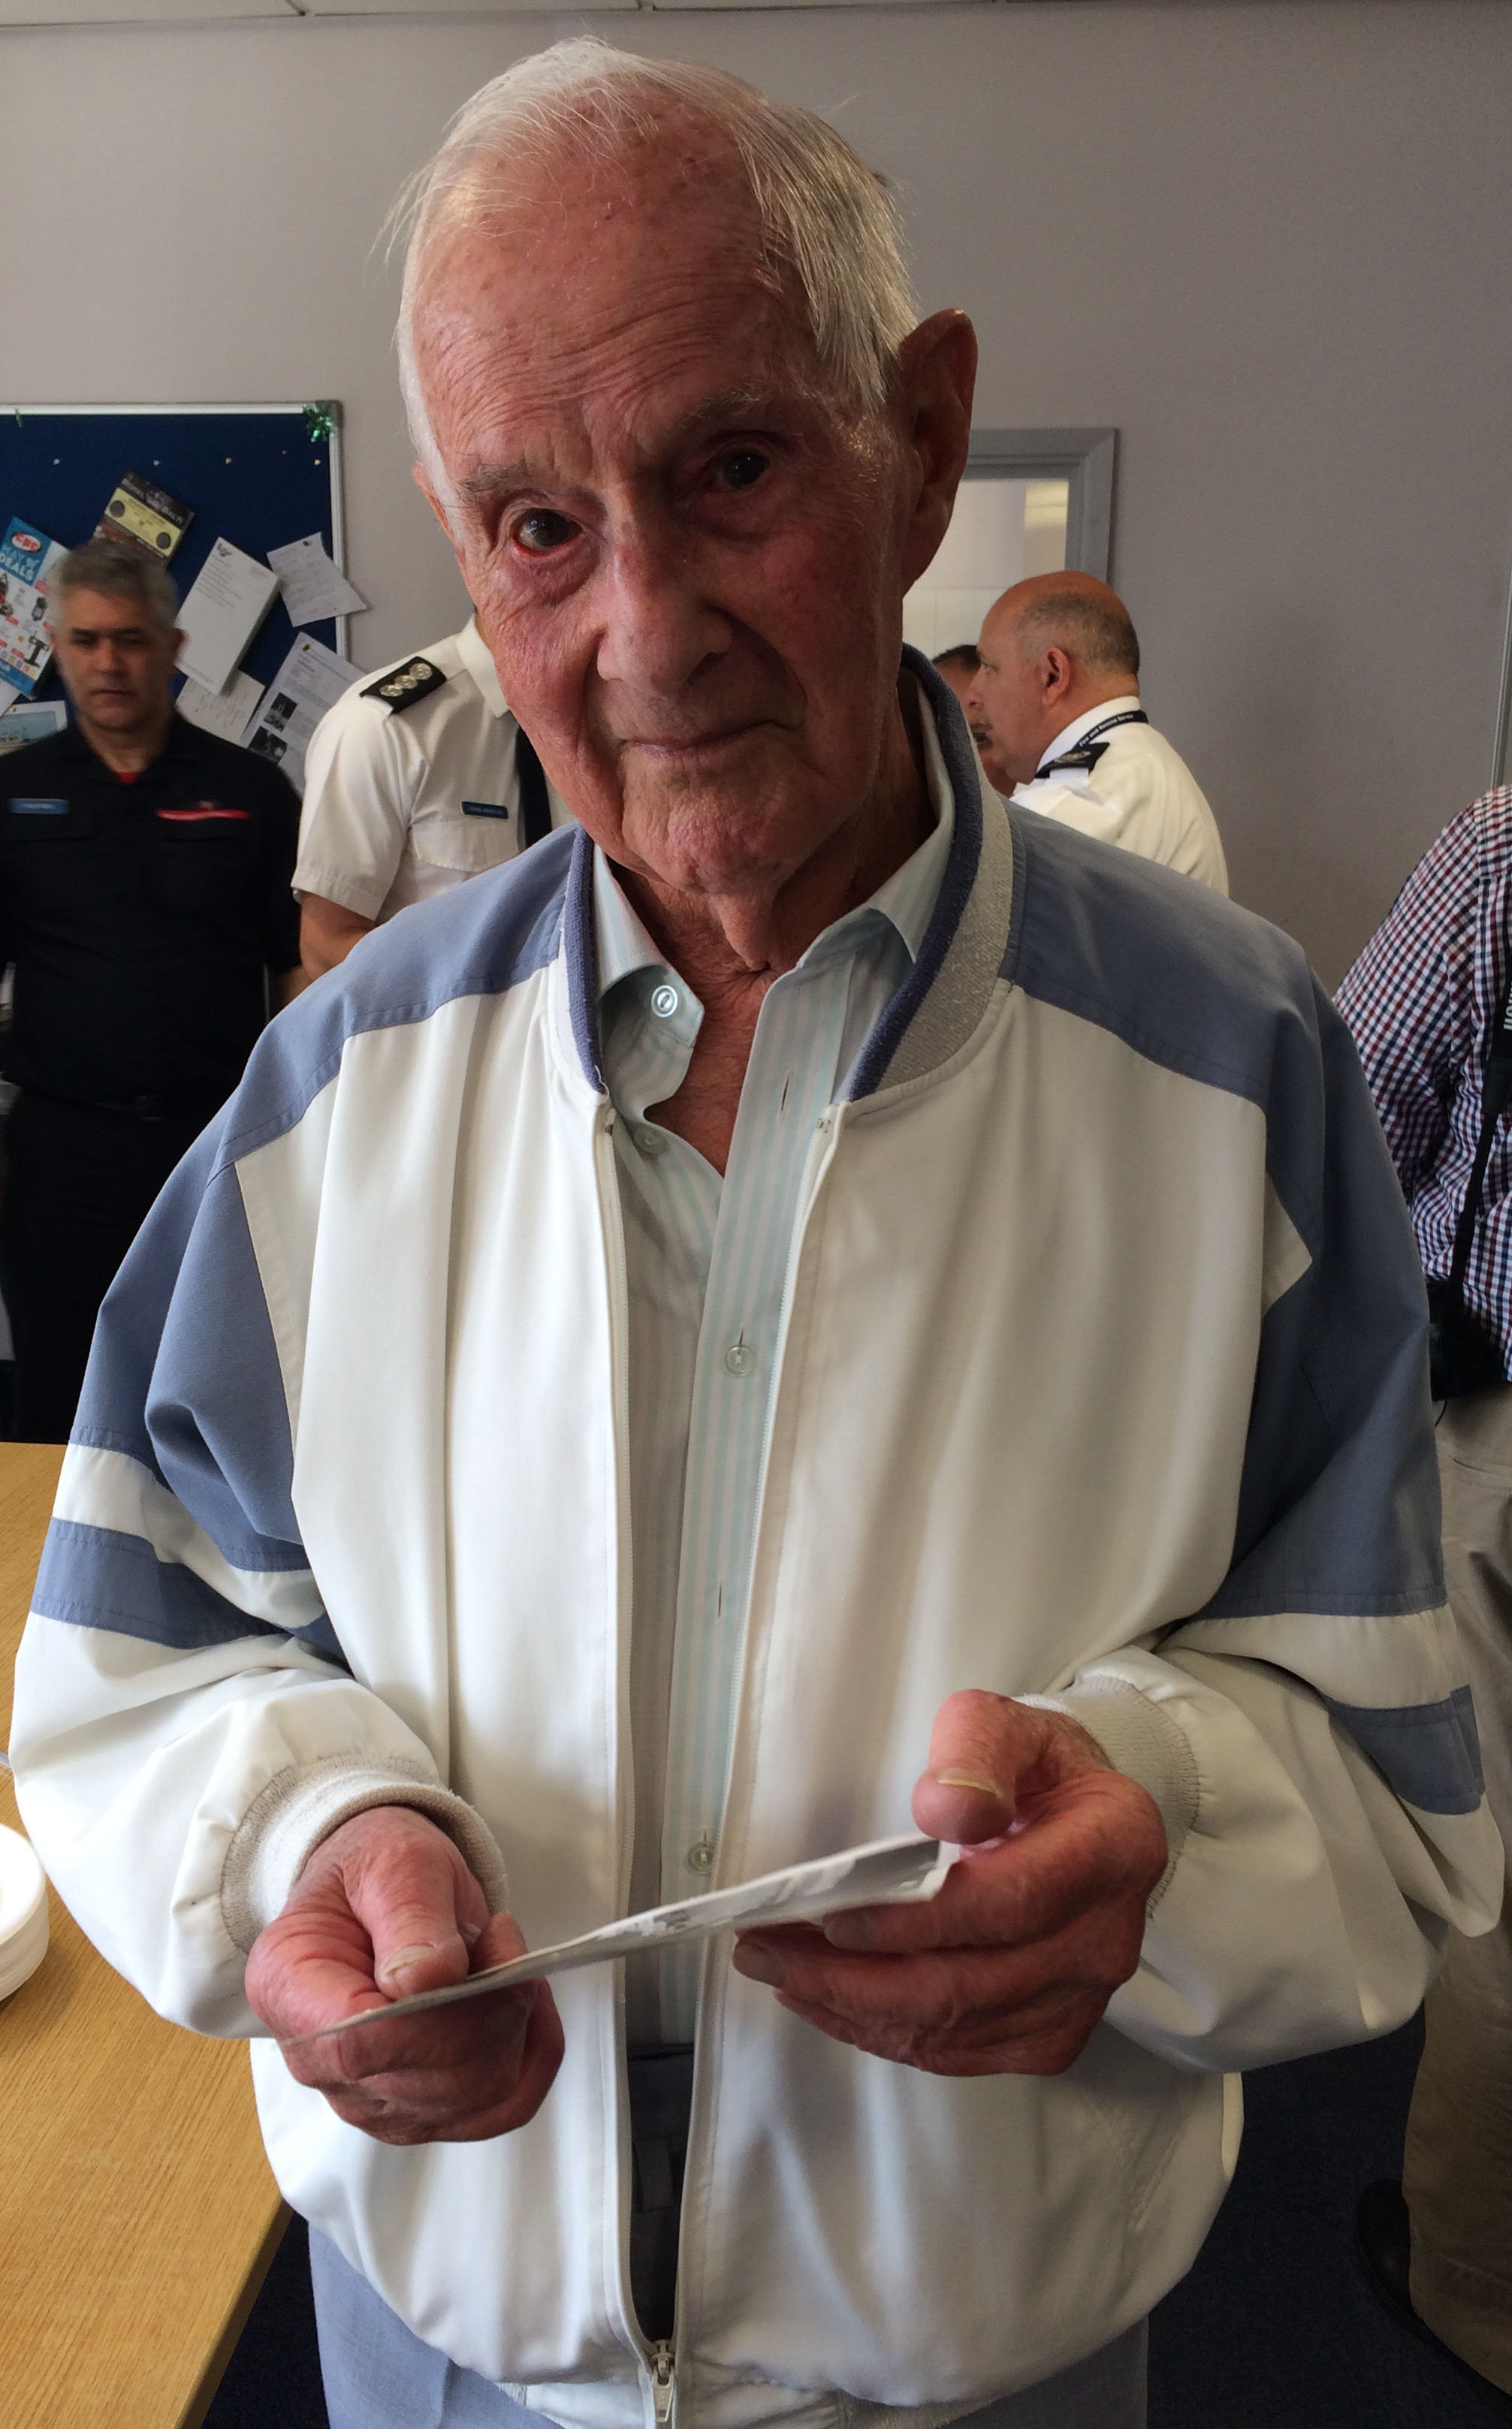 Des Carter (93), who was a firefighter in the Wellington area from 1949.